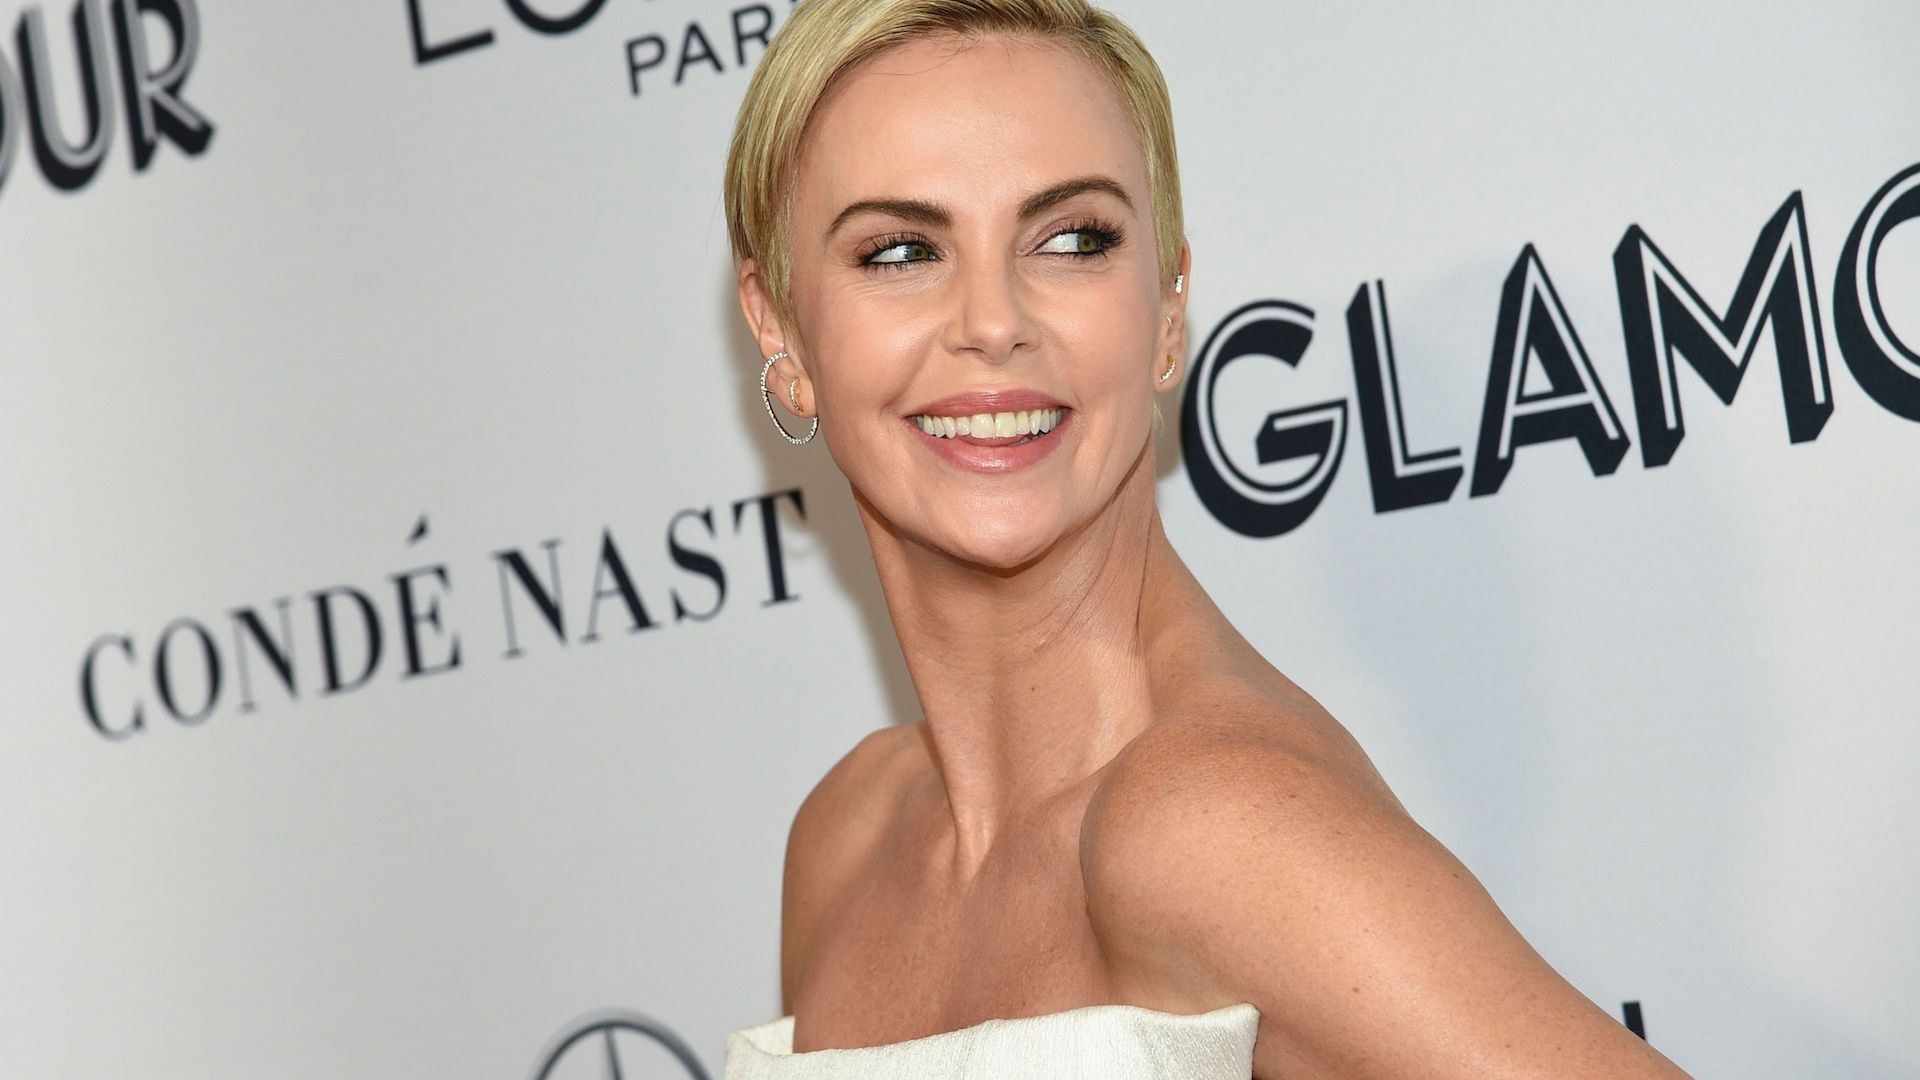 OMG—Charlize Theron Just Gave Us the Ultimate Winter Wedding Dress Inspo